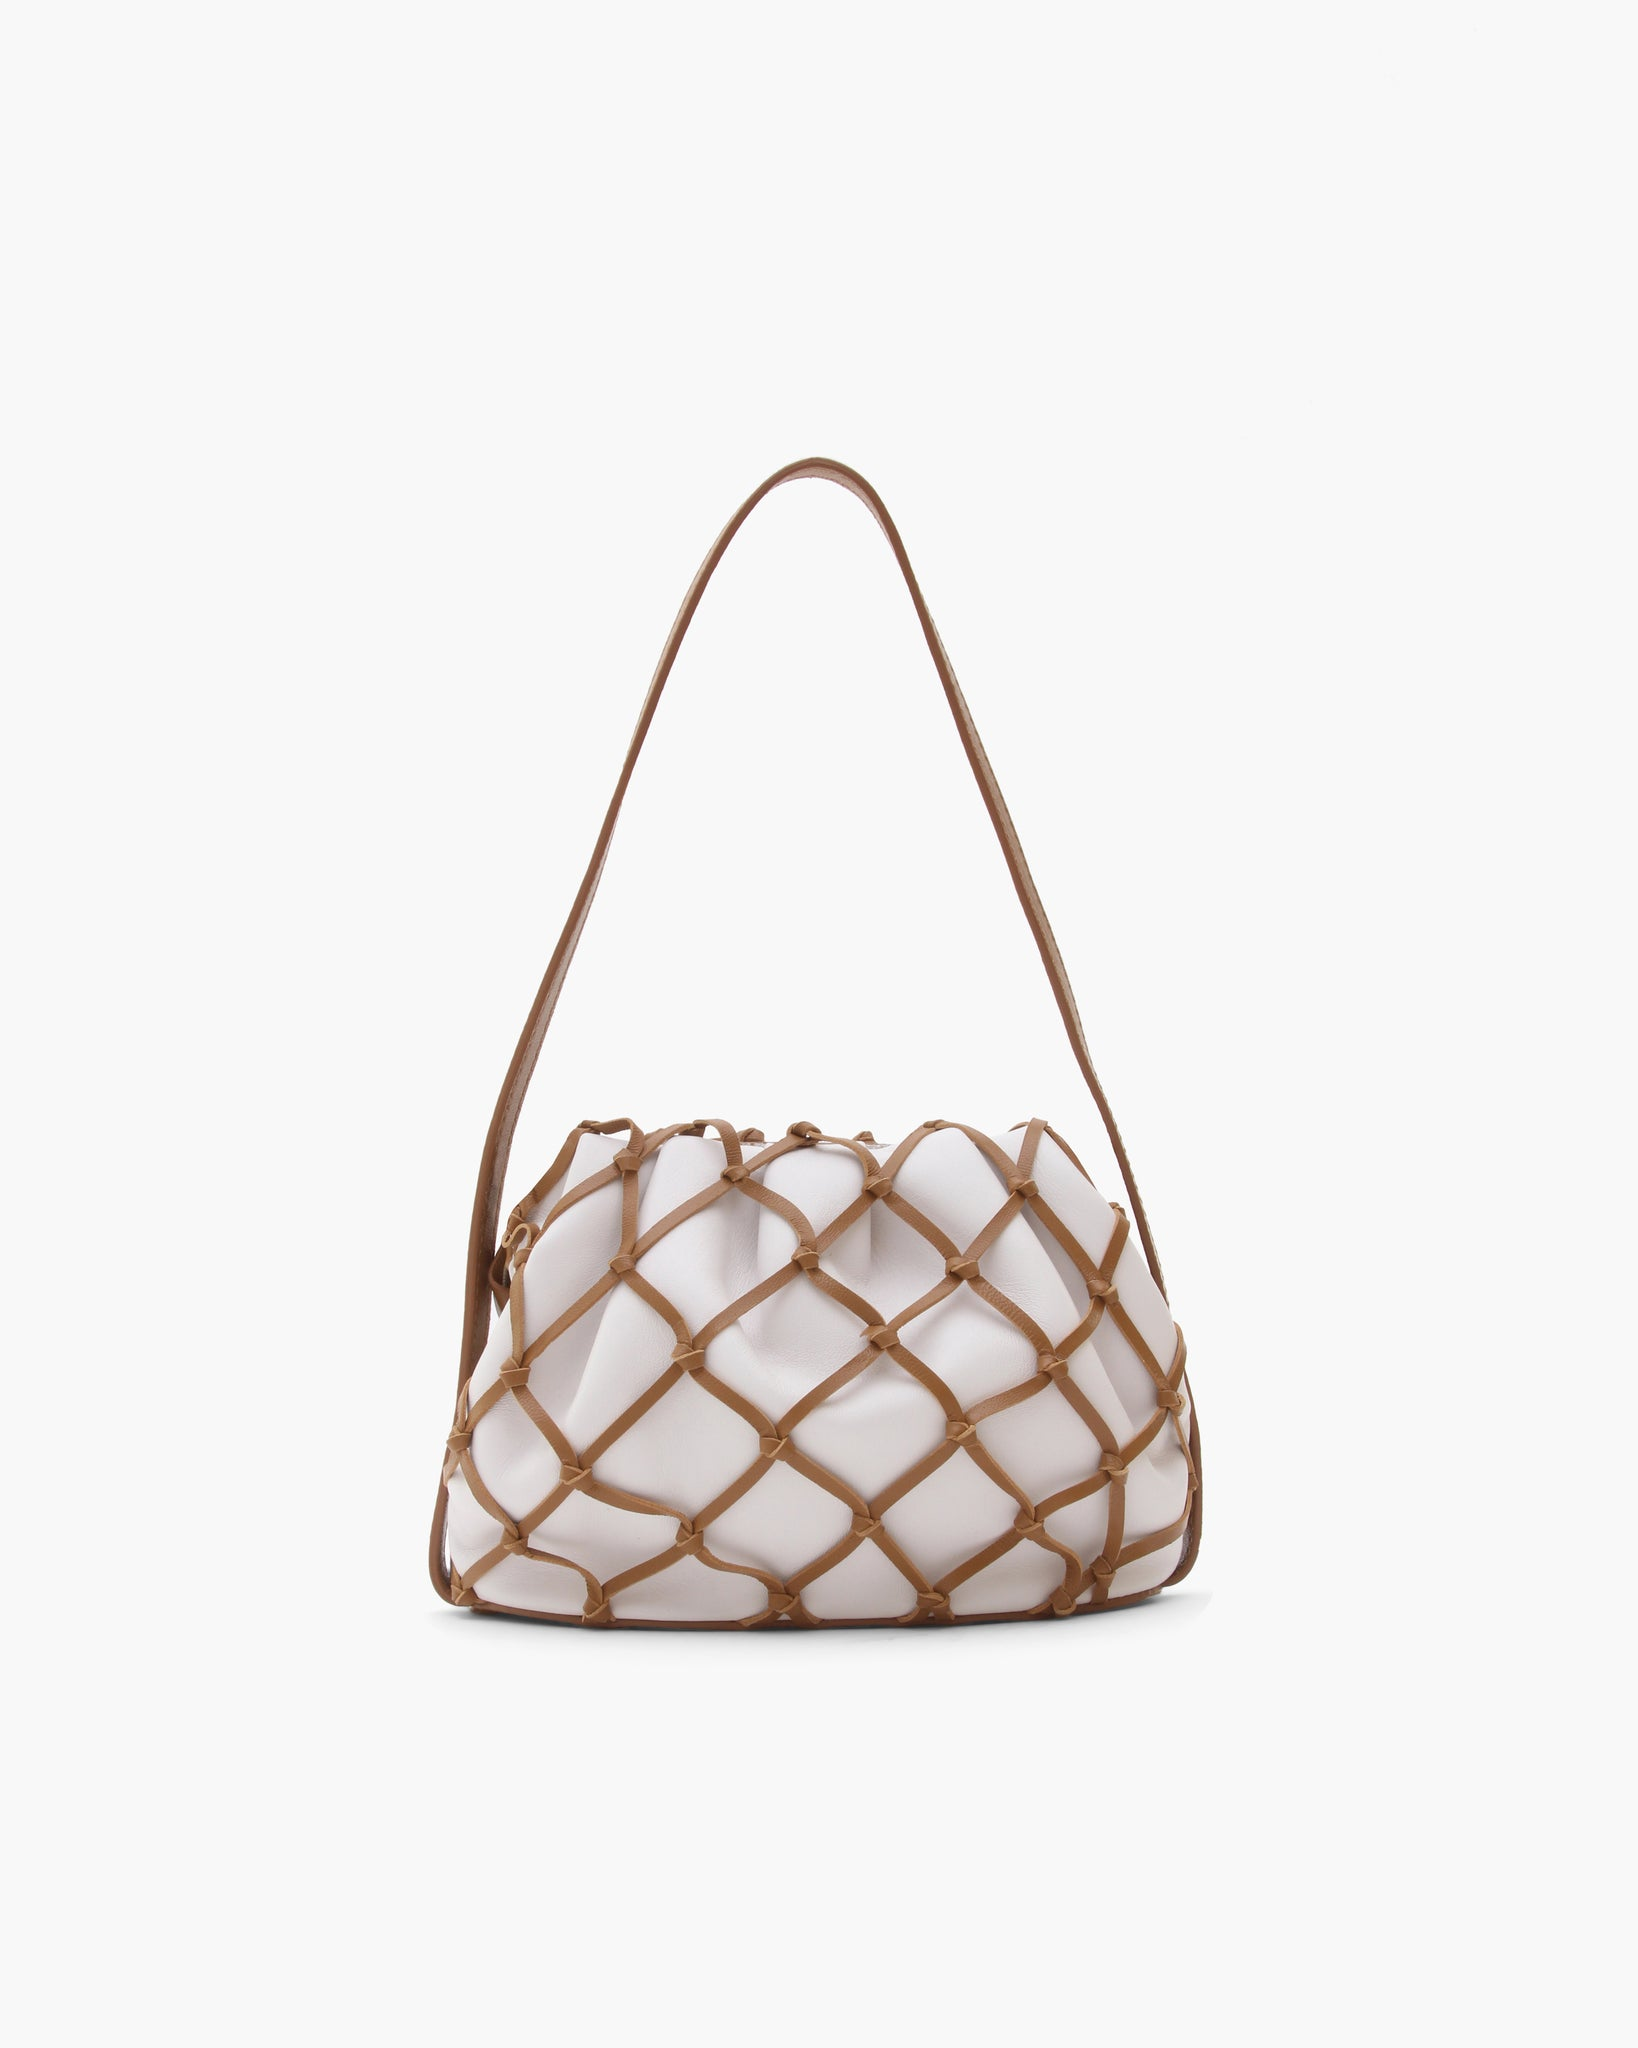 Sonny Bag Leather Ivory + Brown